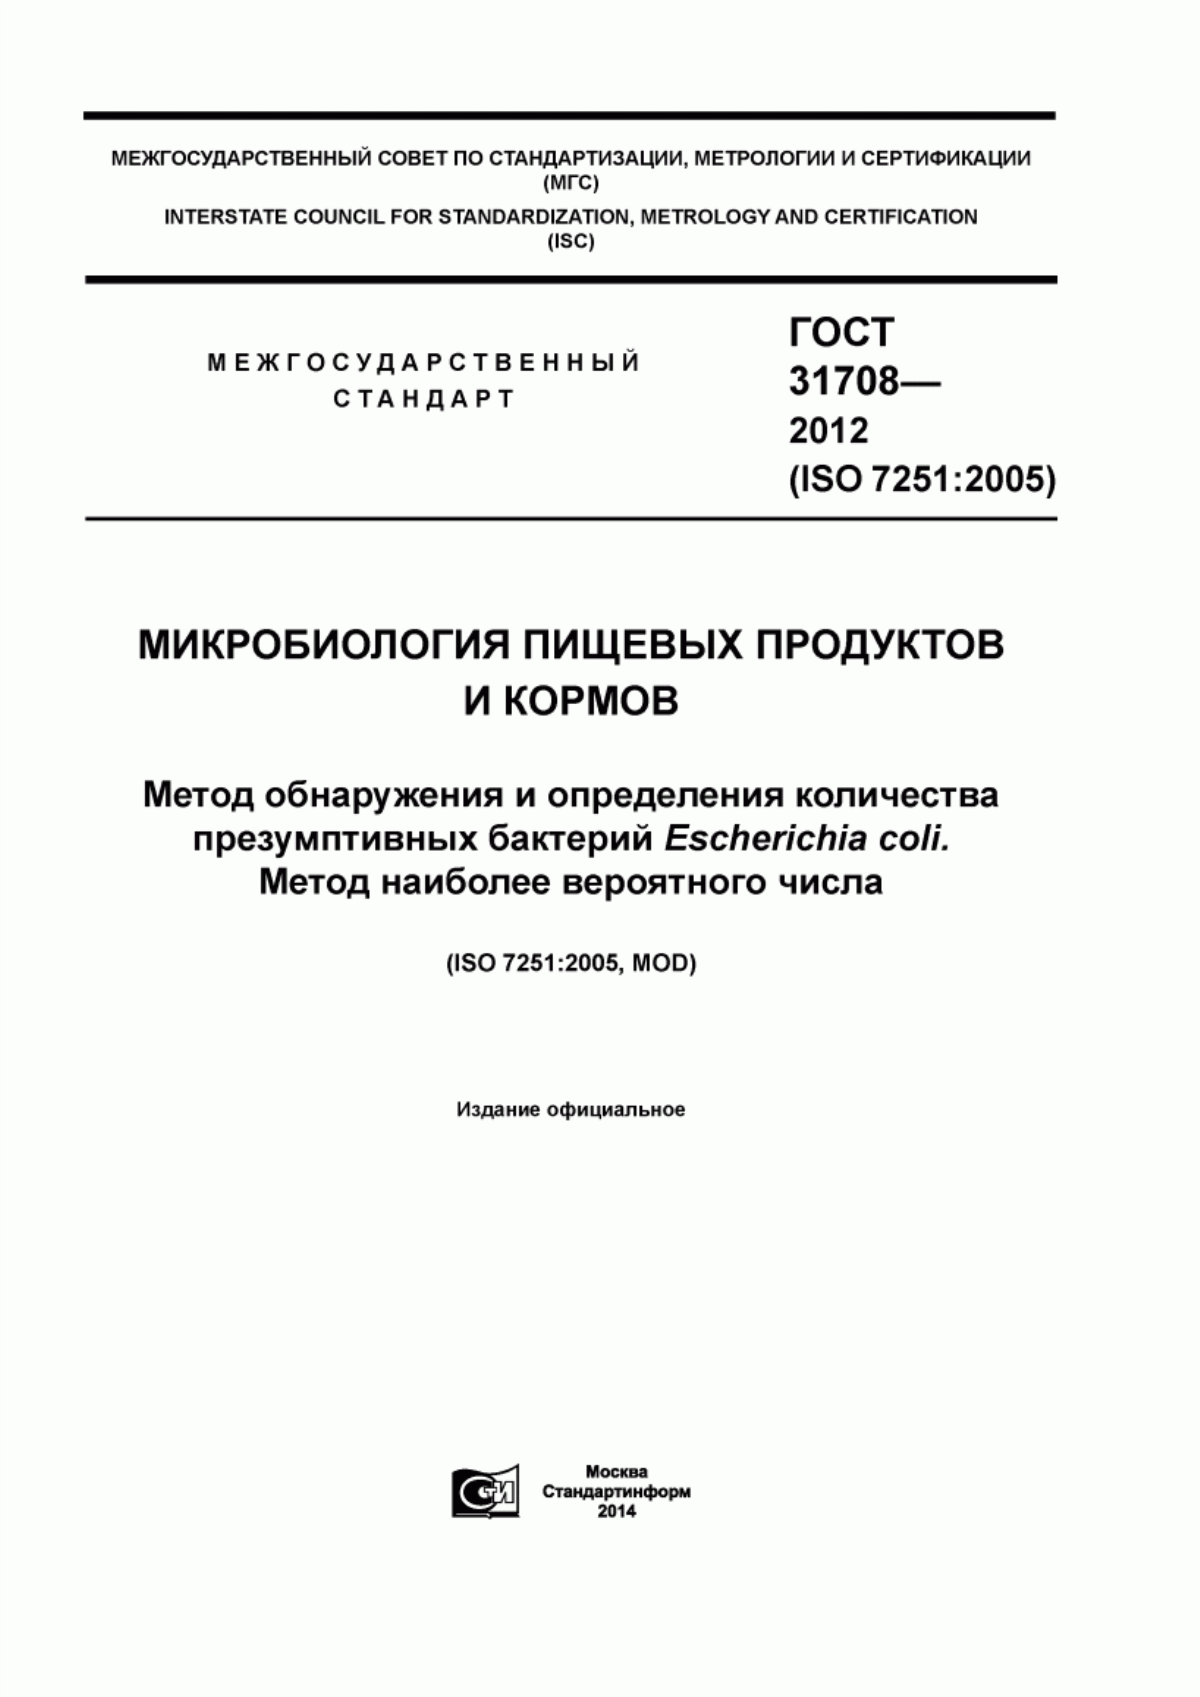 ГОСТ 31708-2012 Микробиология пищевых продуктов и кормов. Метод обнаружения и определения количества презумптивных бактерий Escherichia coli. Метод наиболее вероятного числа